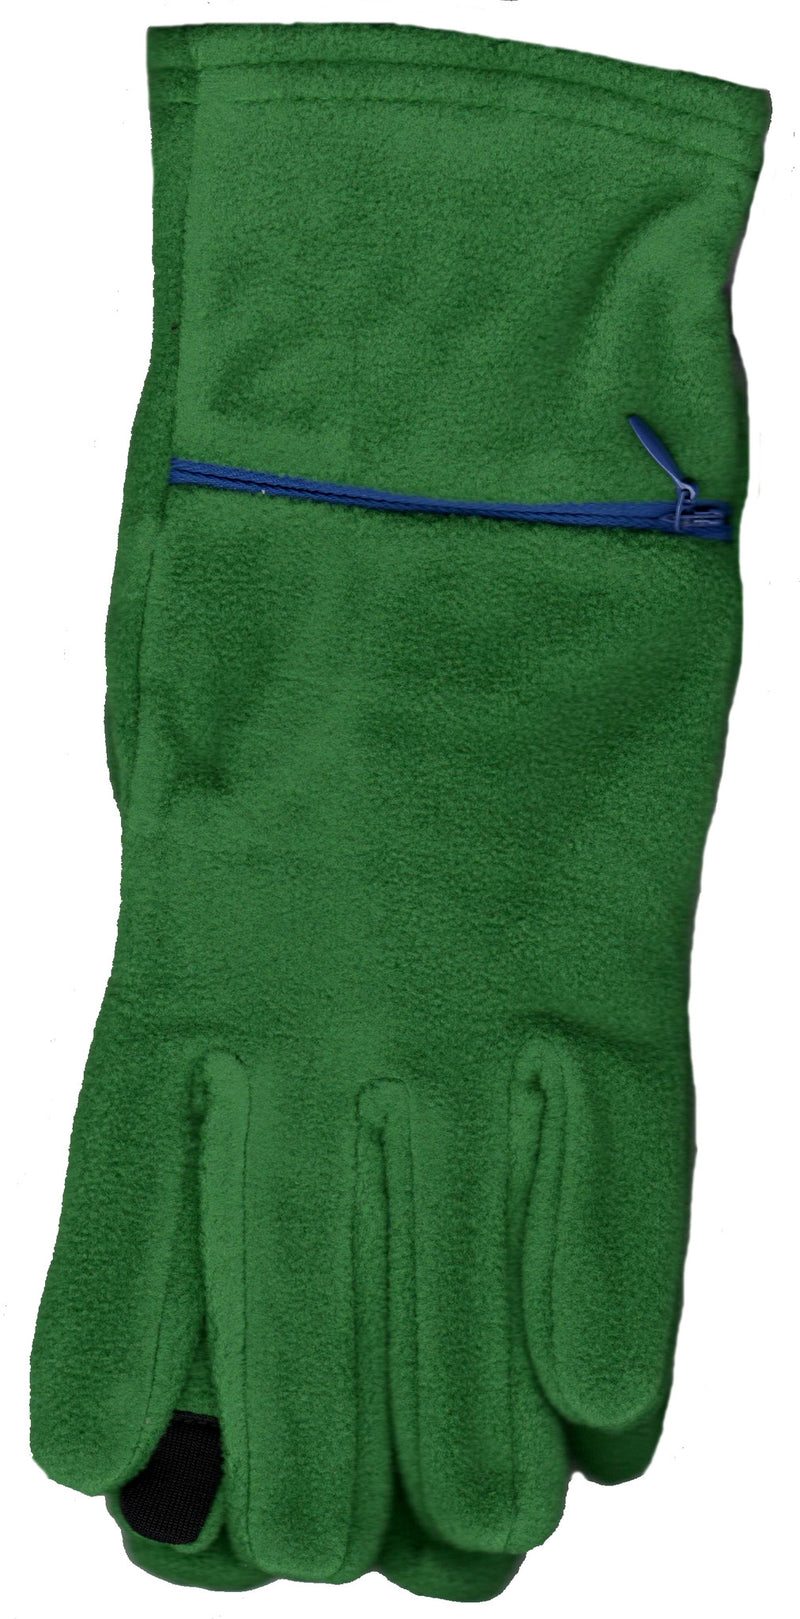 Lauer Touch Sensor Stretch Microfleece Glove Holly and Cobalt Zipper